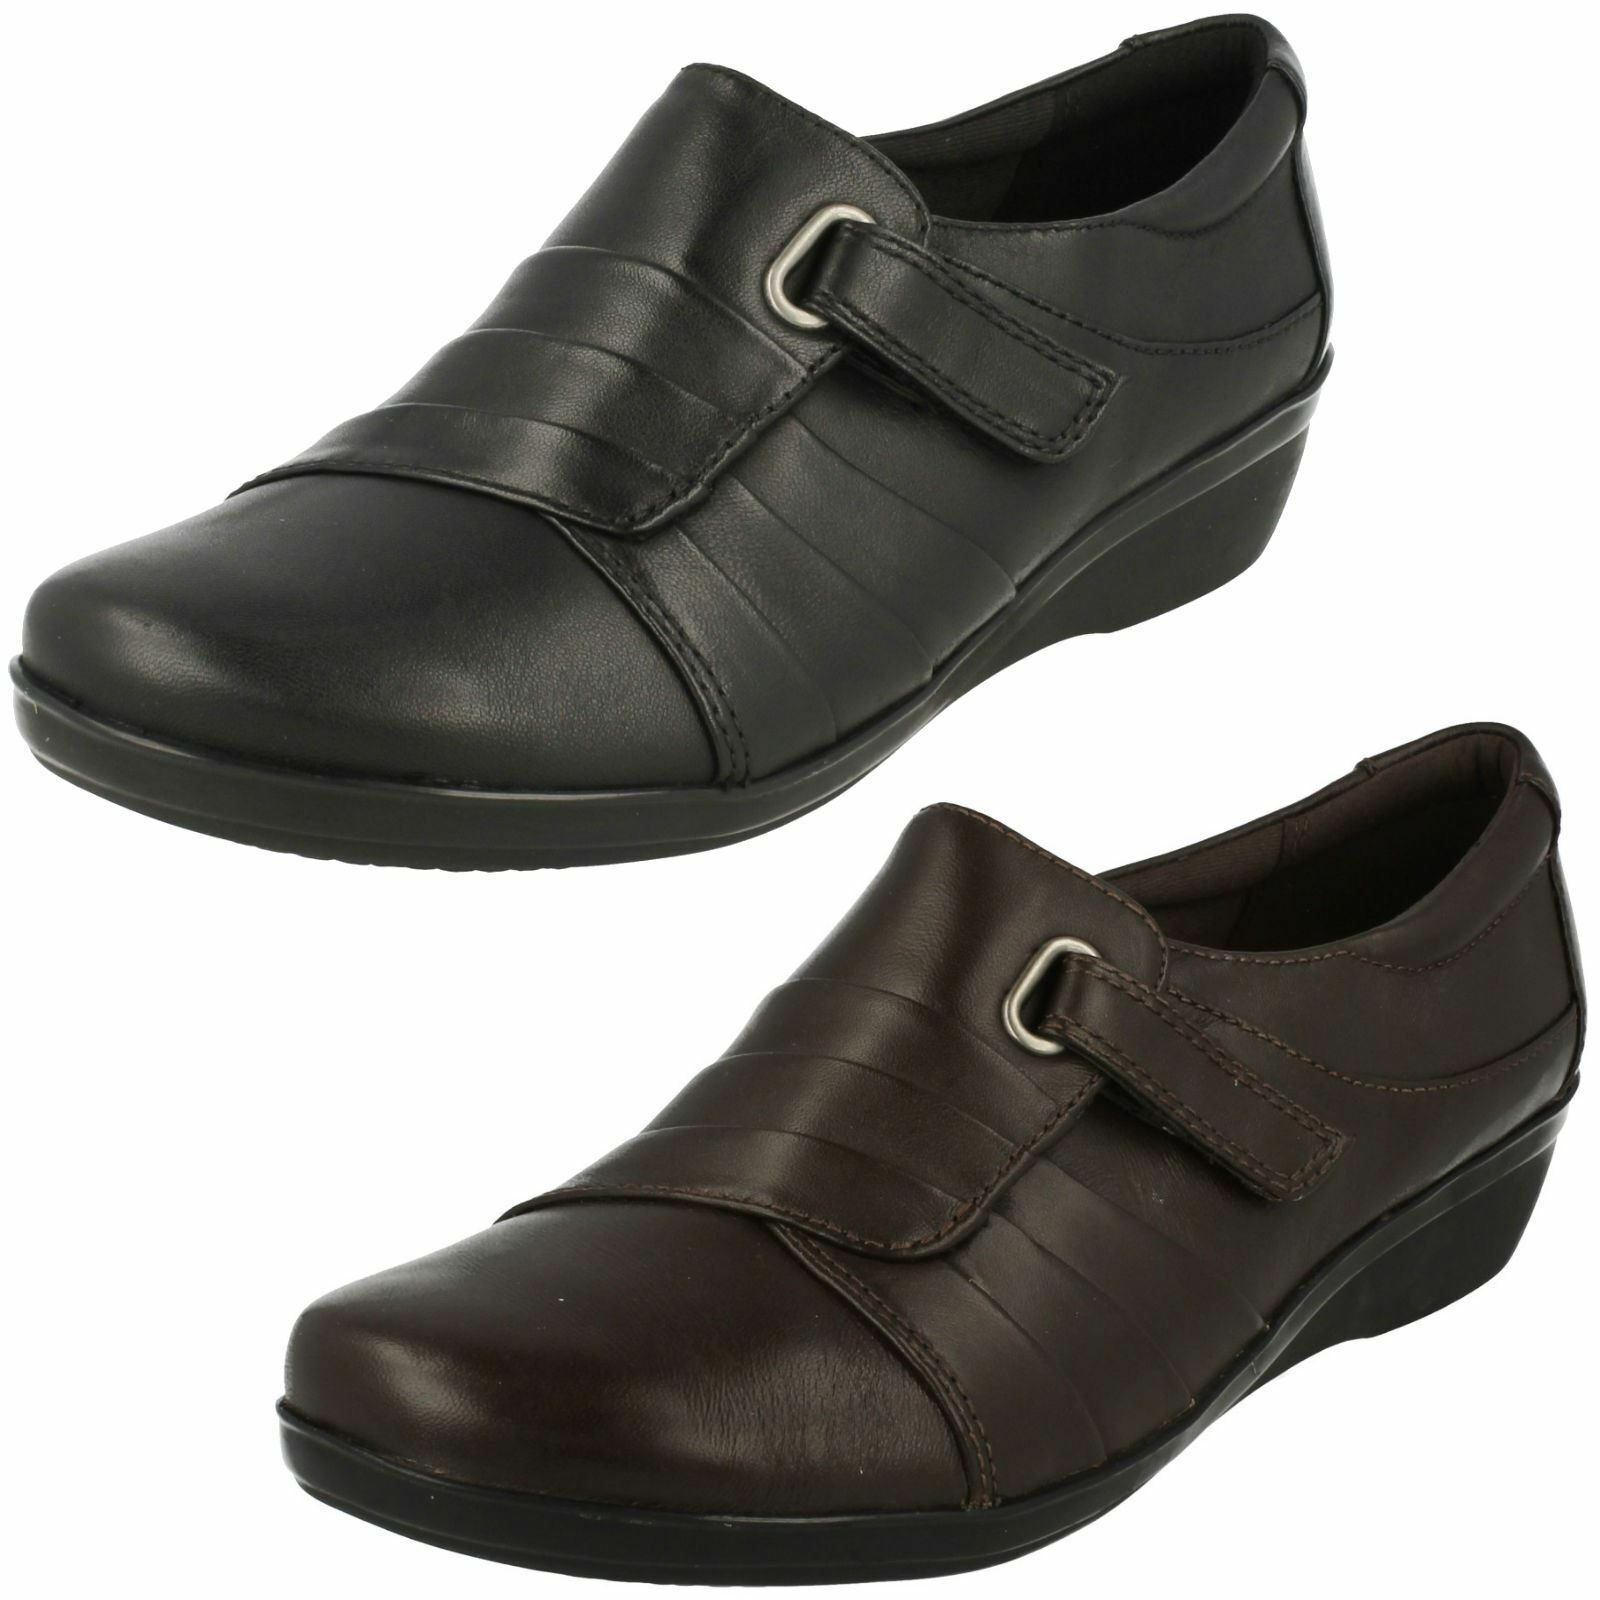 Ladies Clarks Shoes Low Wedge Smart Shoes Clarks